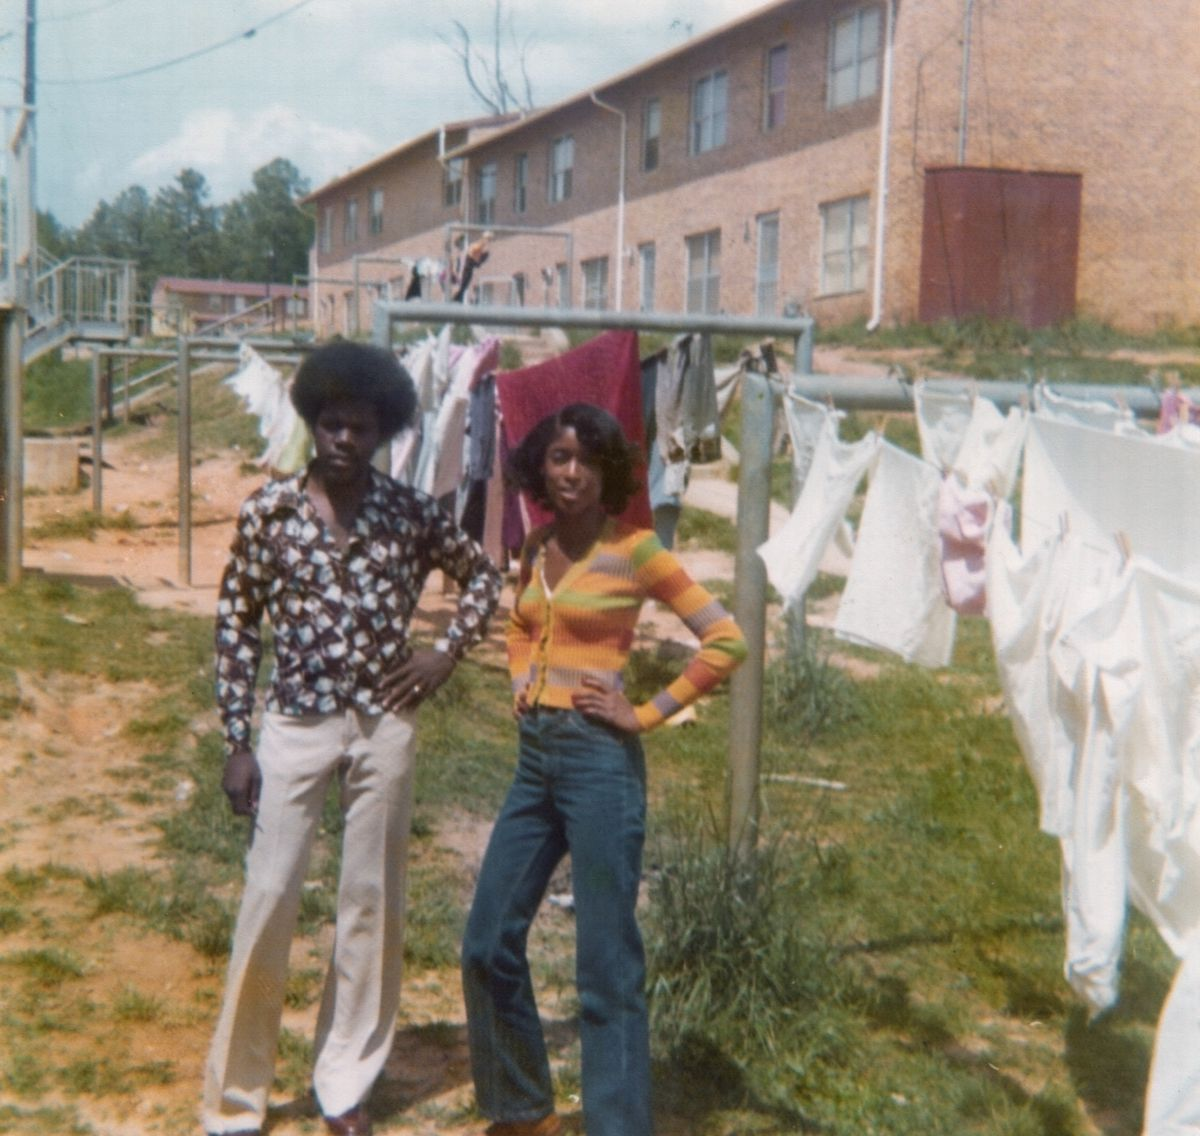 A couple standing next to hanging laundry in Atlanta.